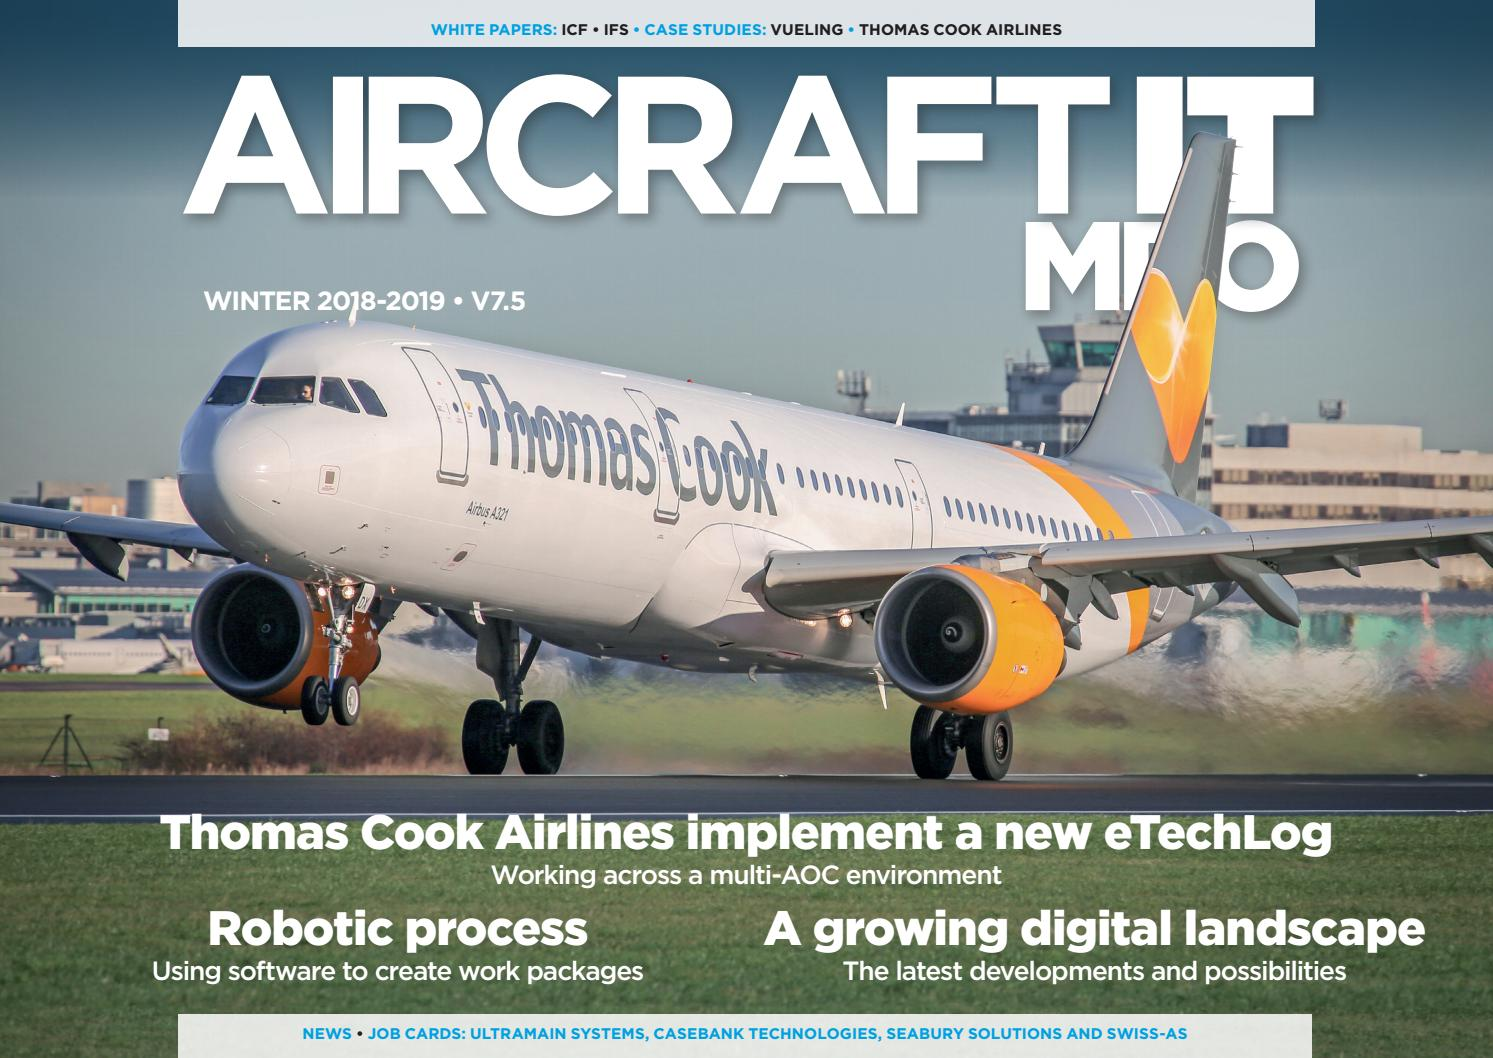 Aircraft IT MRO V7 5, Winter 2018-2019 by aircraftit - issuu